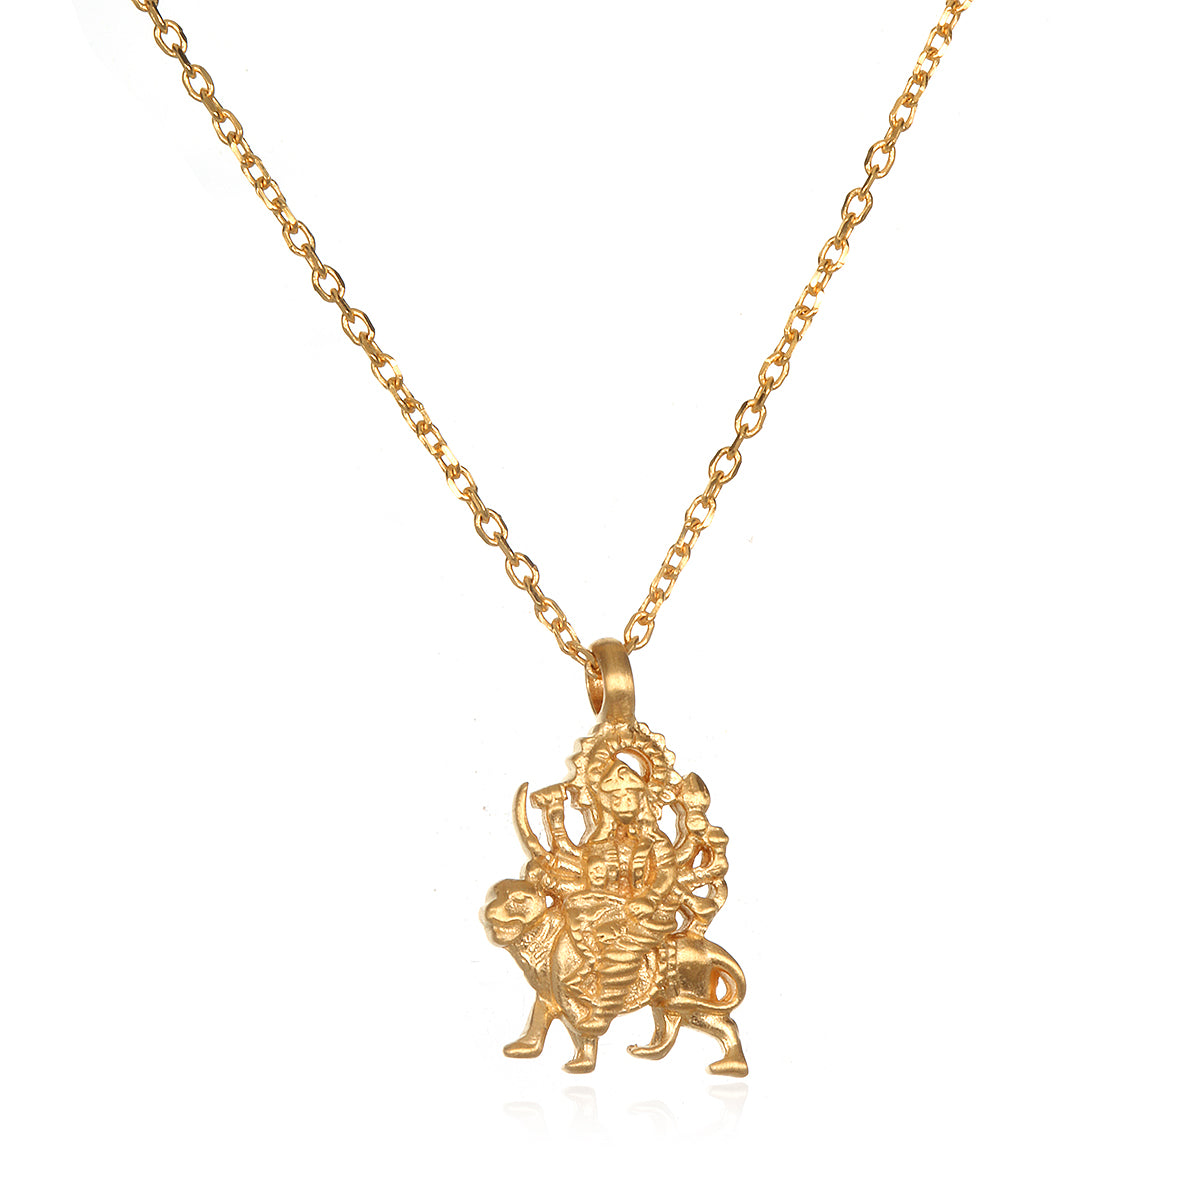 Fearless goddess durga necklace kimberly snyder fearless goddess durga necklace mozeypictures Image collections